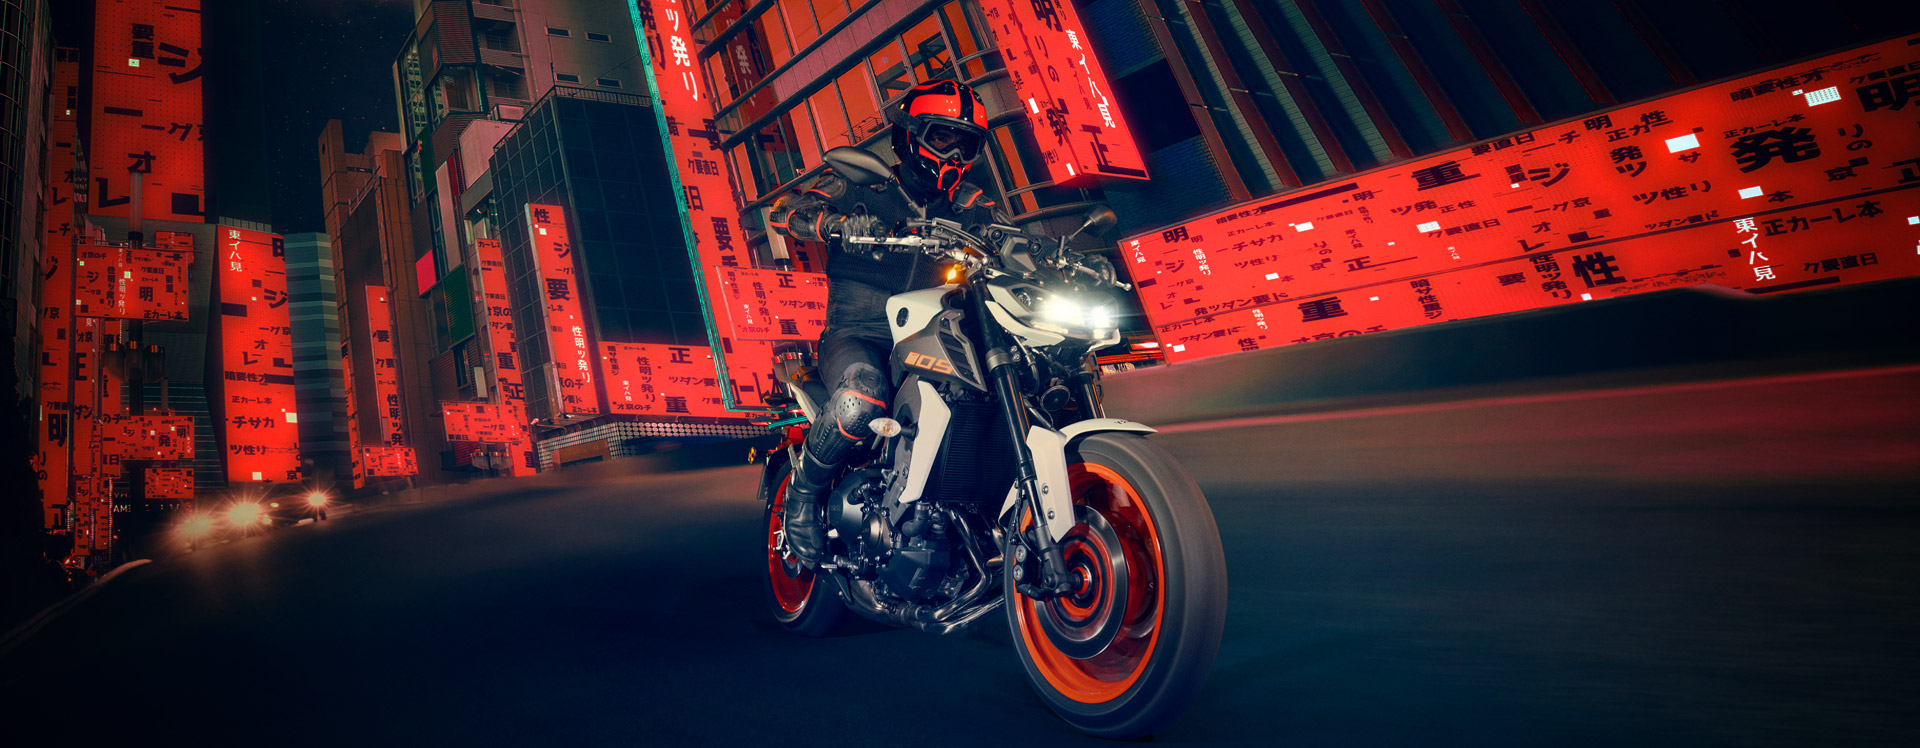 2019 Yamaha MT-09 Hyper Naked Motorcycle - Model Home